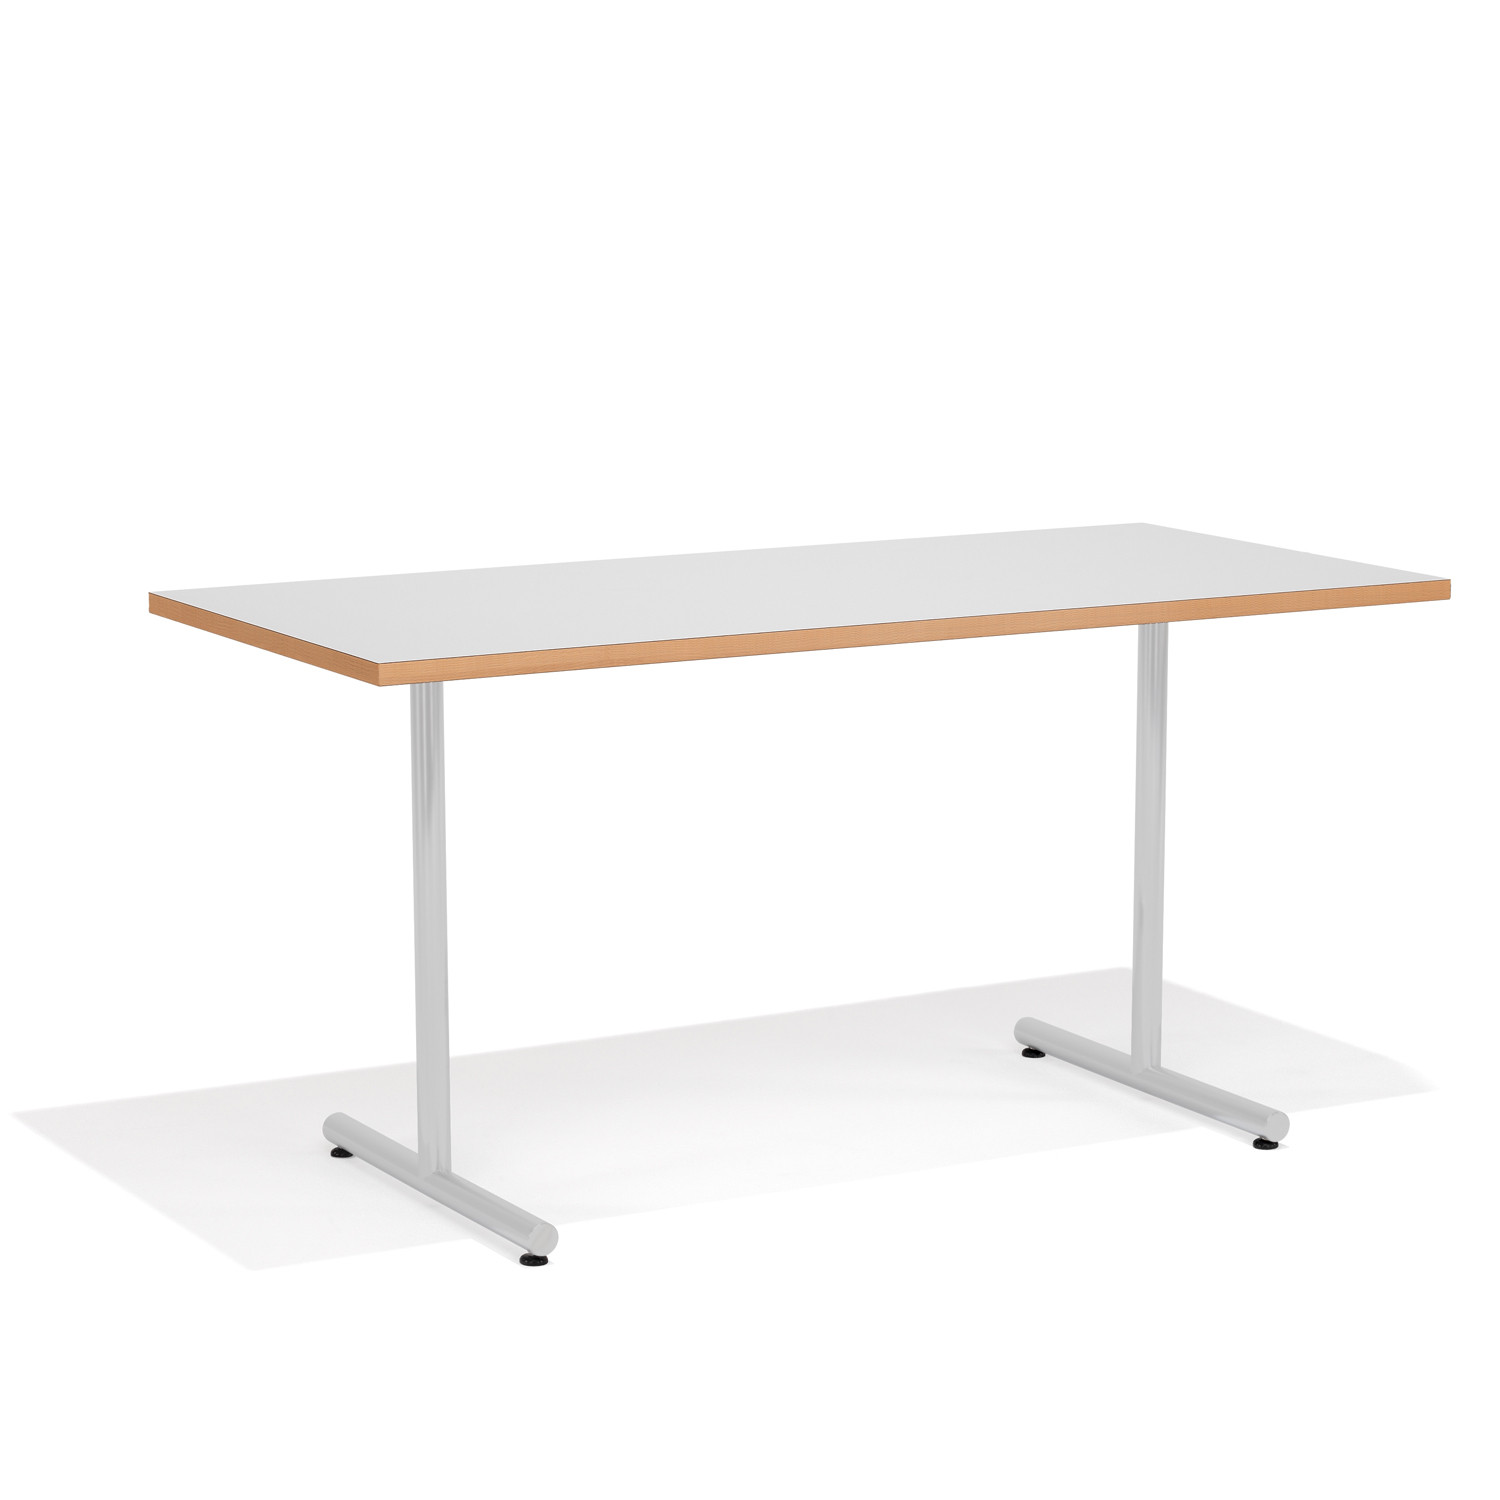 folding table lengthways 28 images lengthwise fold  : 4000 delgadotable 05 from bighomes.ca size 1500 x 1500 jpeg 67kB